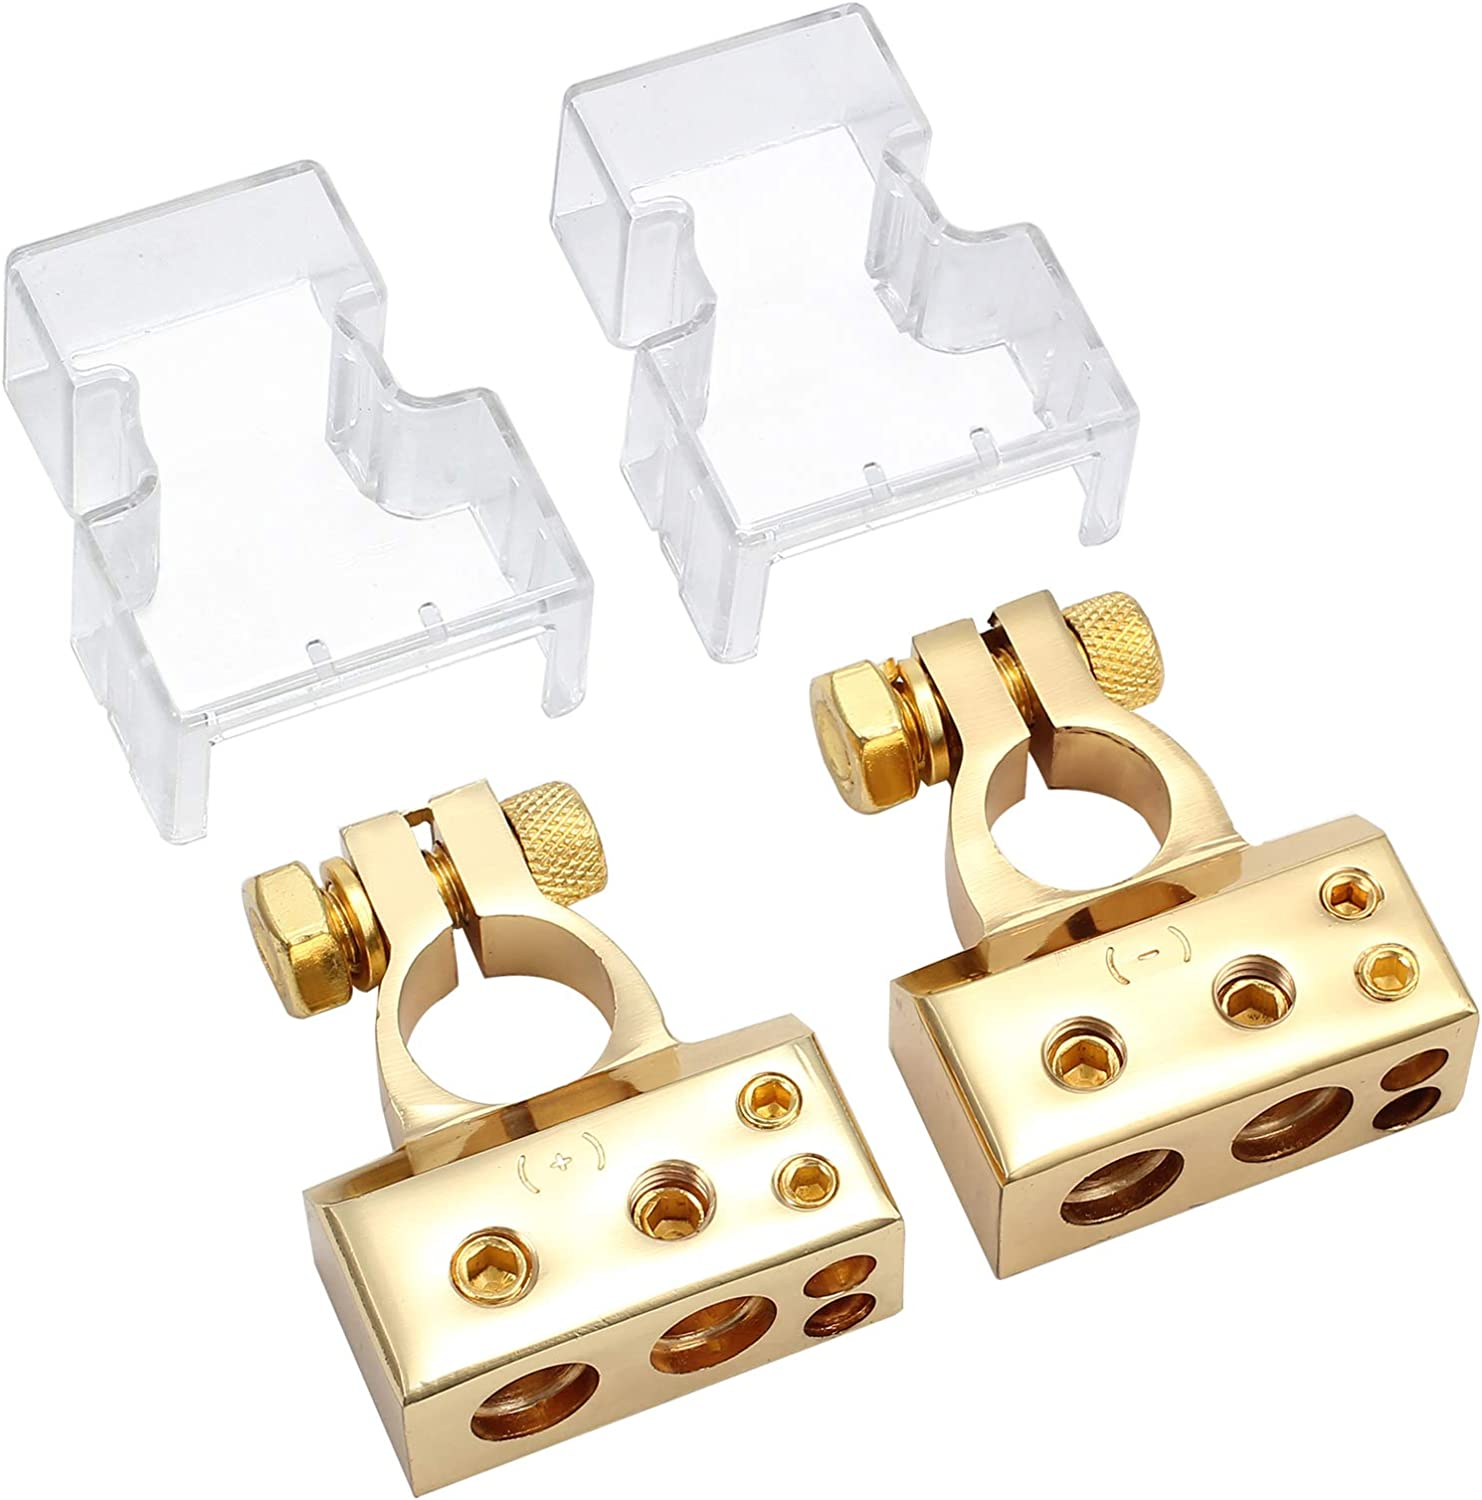 Golden eSynic 2PCS Car Battery Terminal Connectors with Voltmeter Covers 0//4//8 Or 10 Gauge AWG Positive Negative Battery Post Clamp and Shims for Car Audio Modification